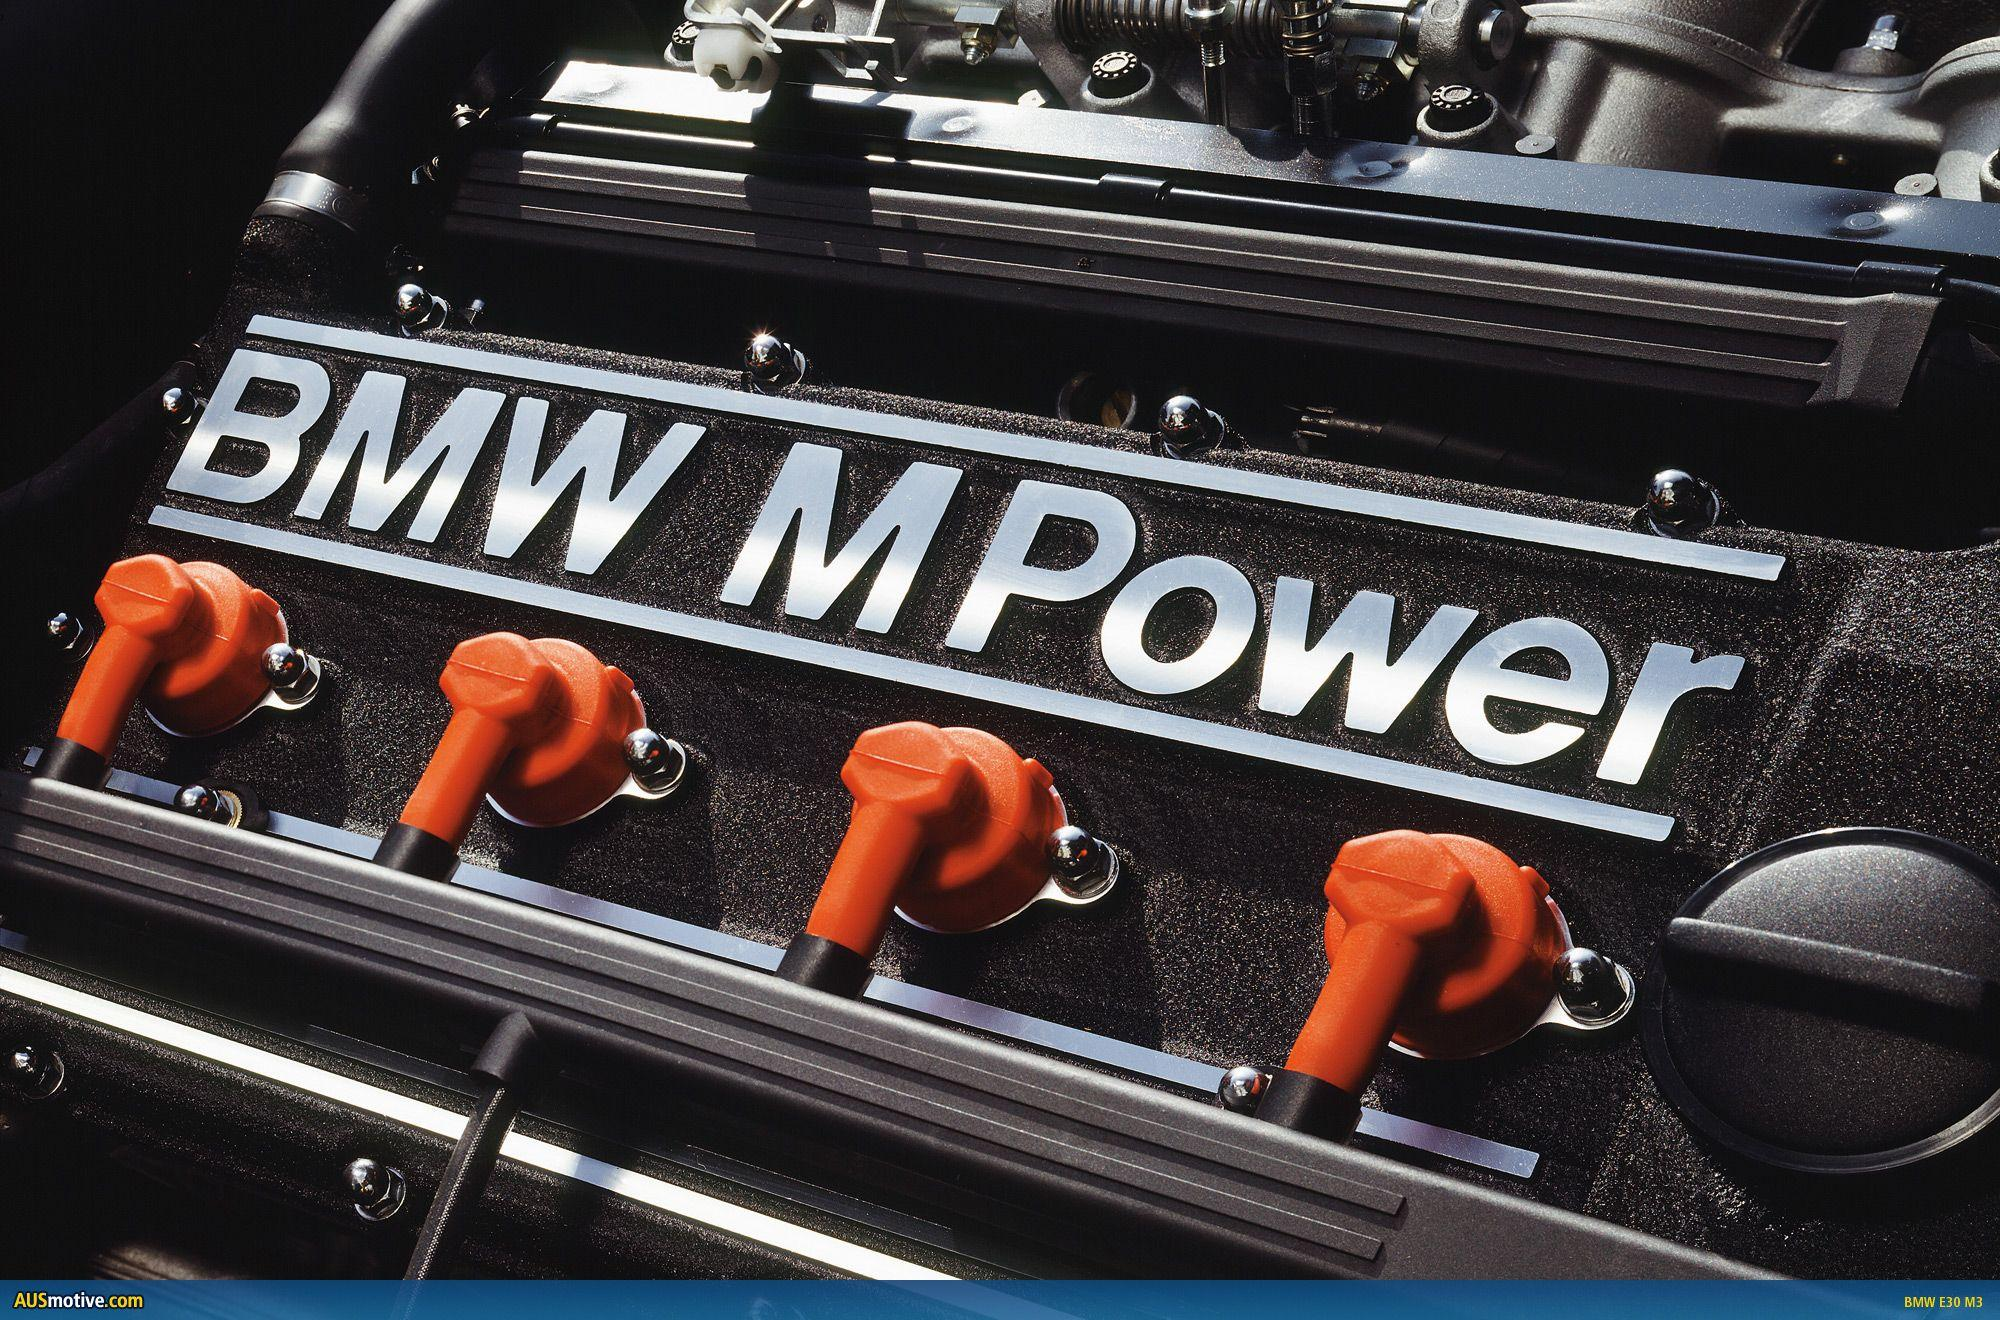 AUSmotive » 25 years of the BMW M3